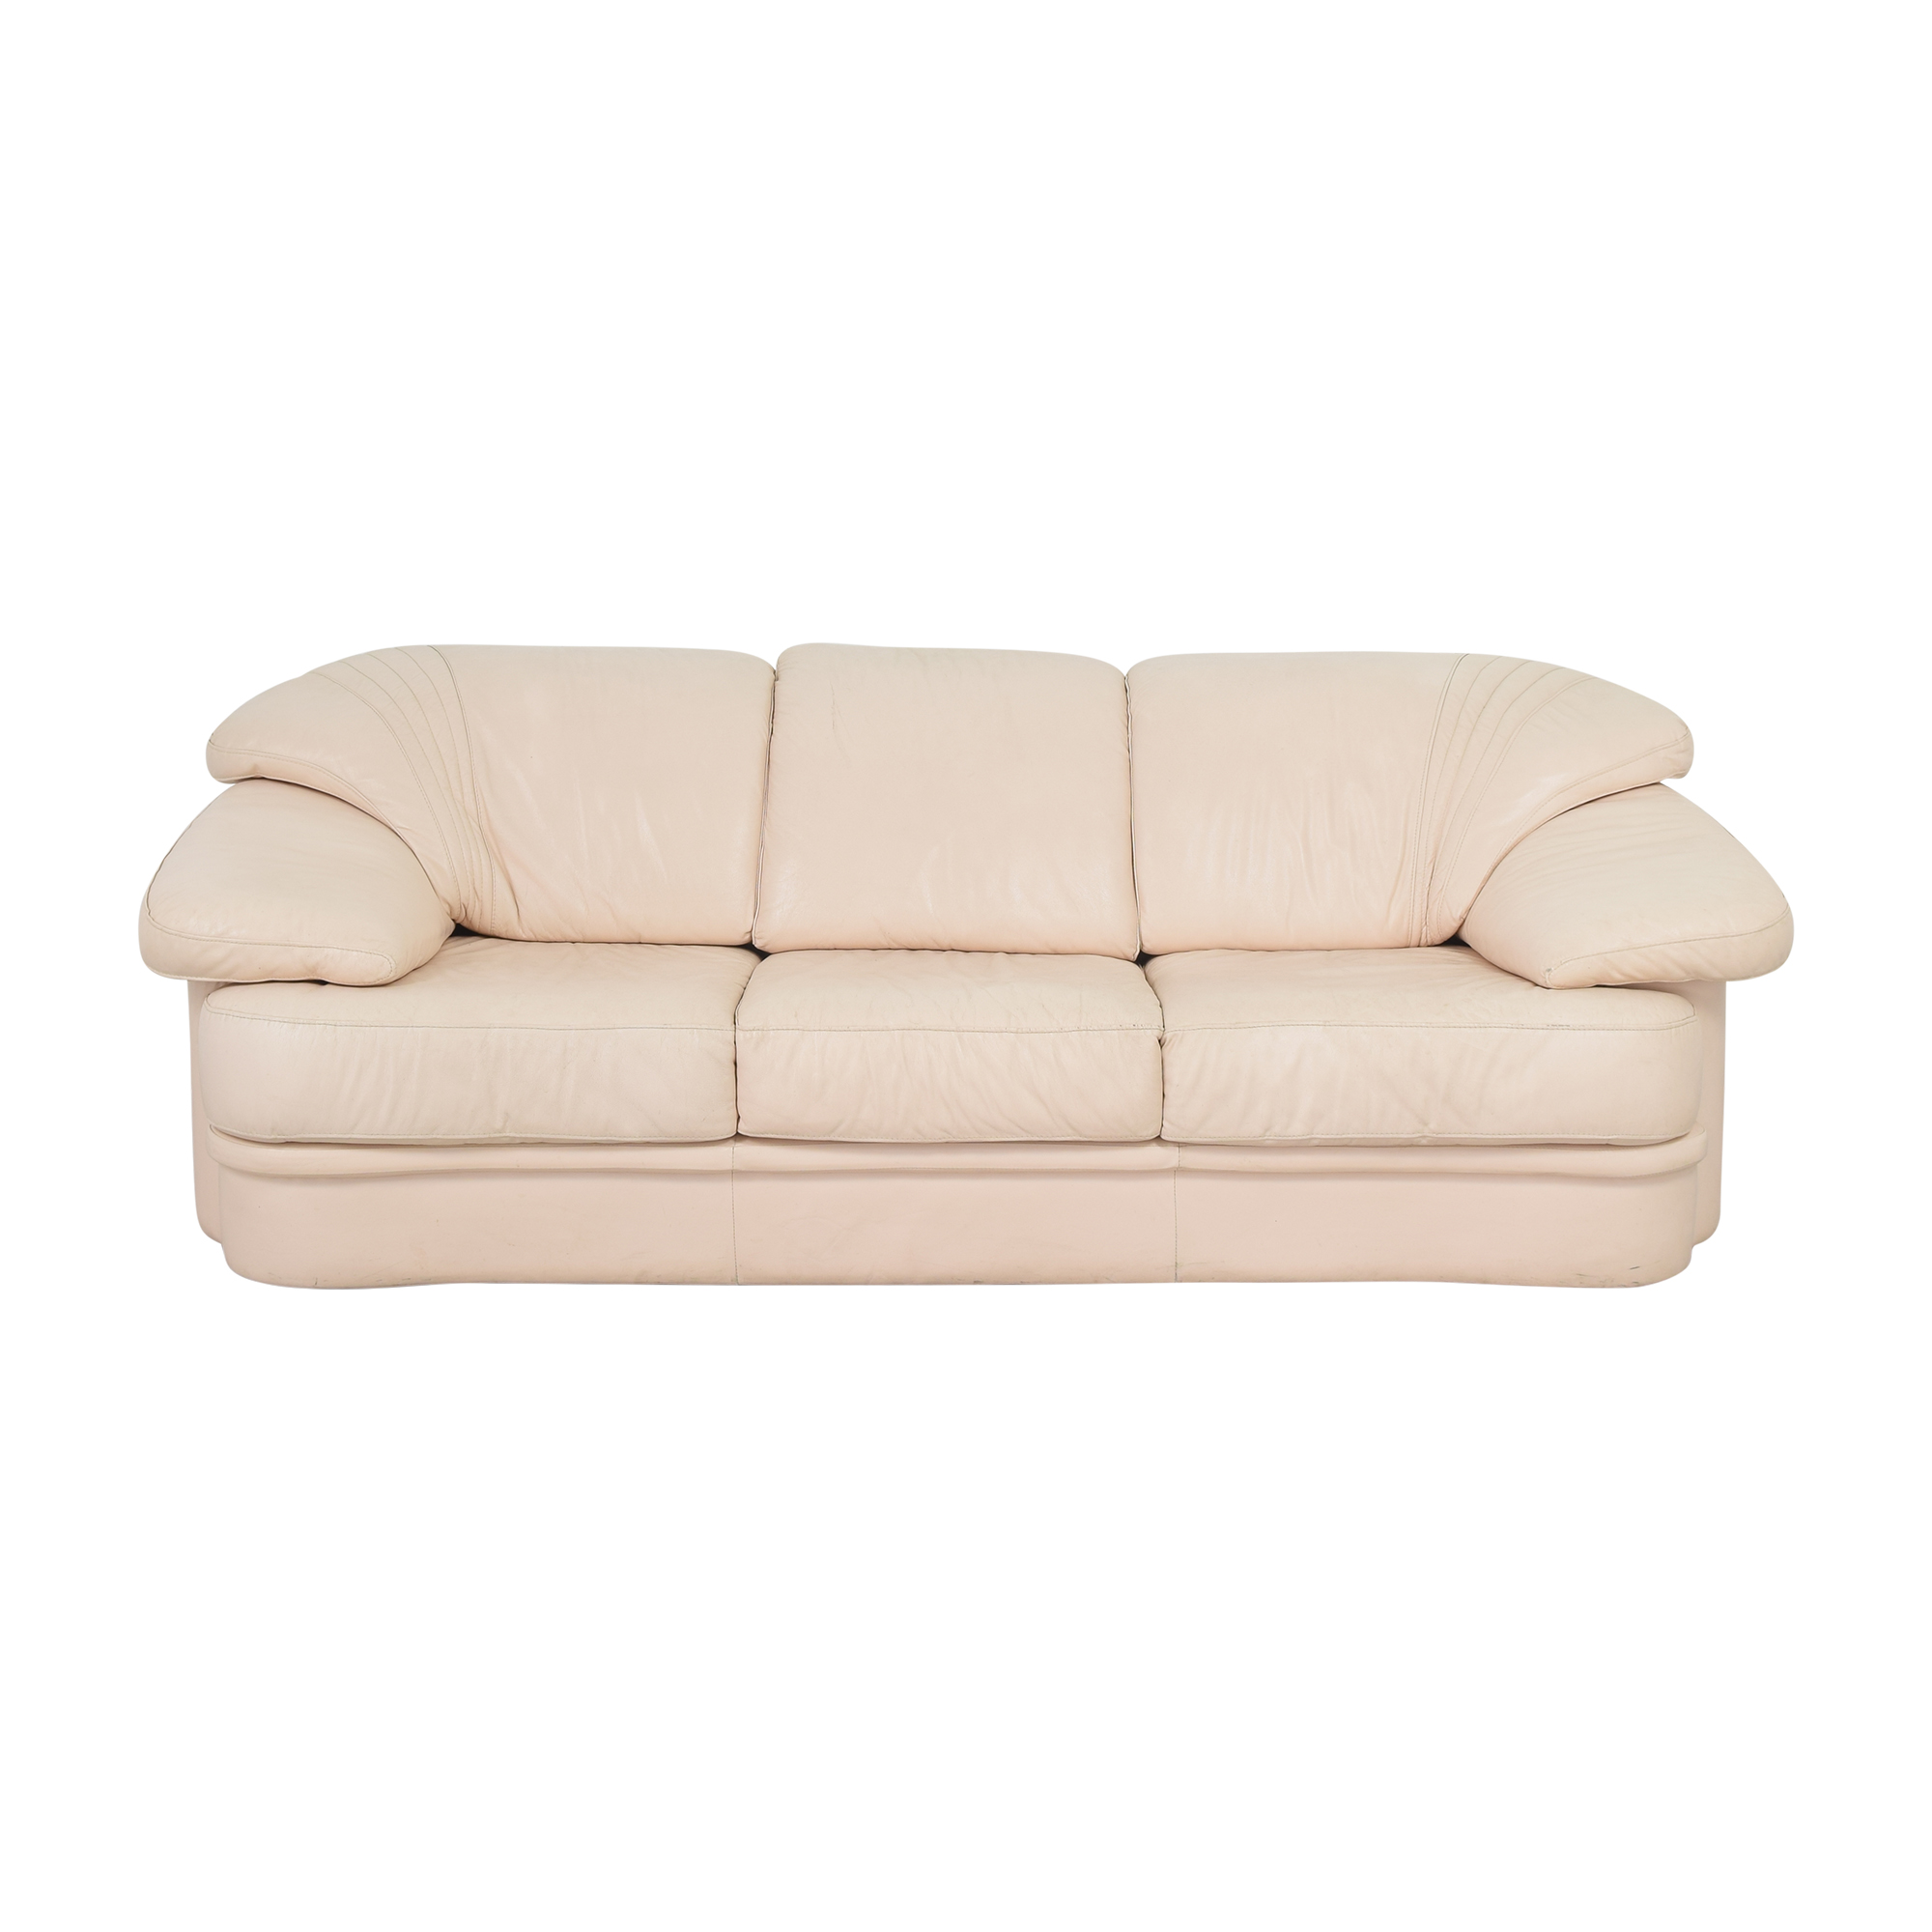 shop Softline Softline Three Cushion Sofa online